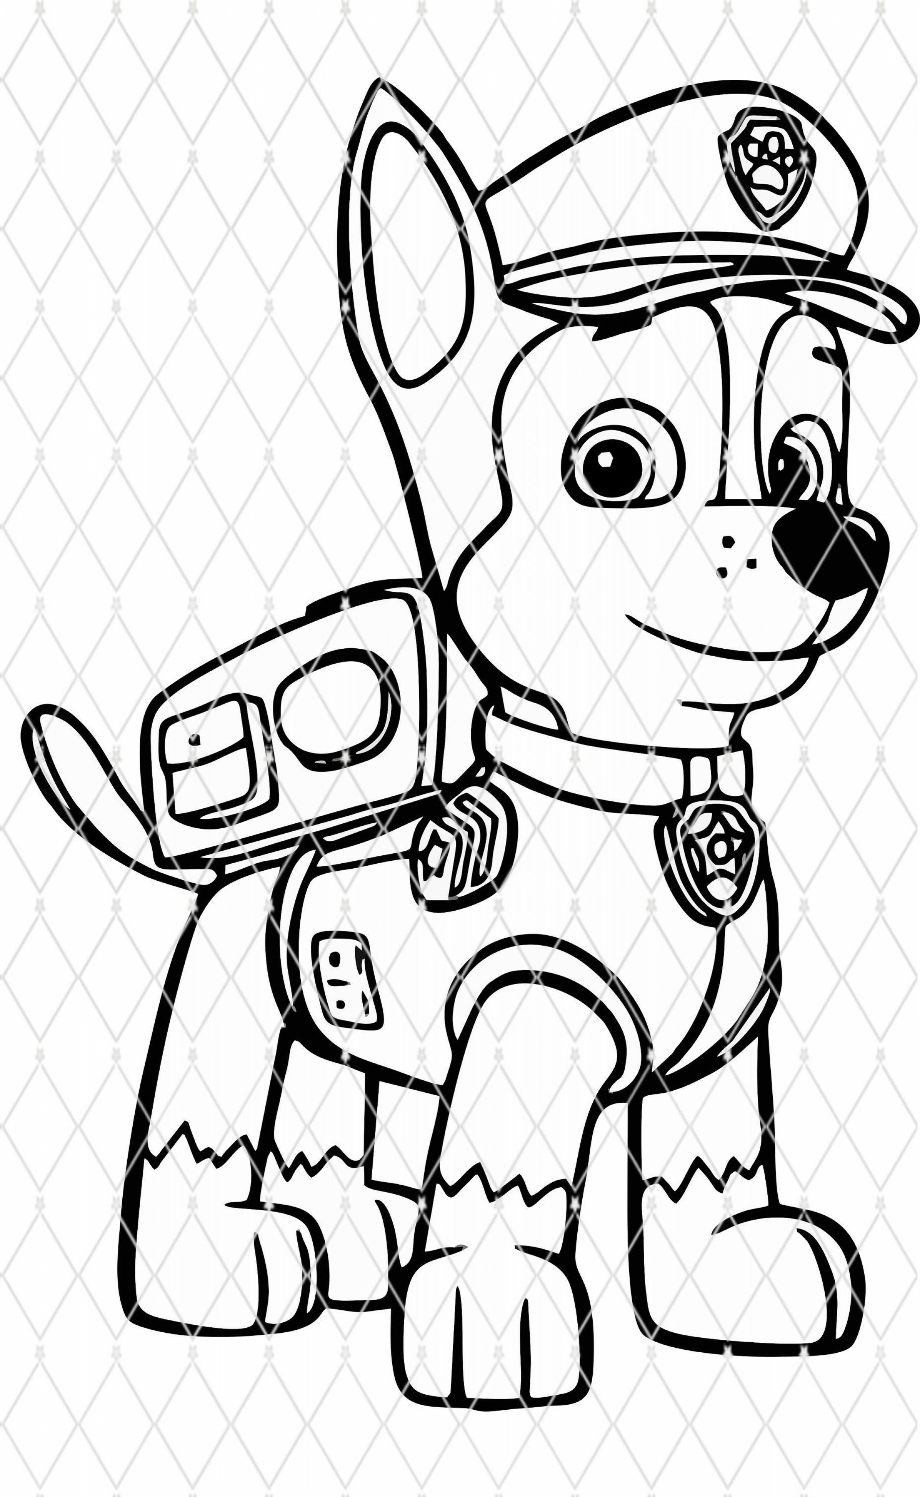 download high quality paw patrol clipart silhouette